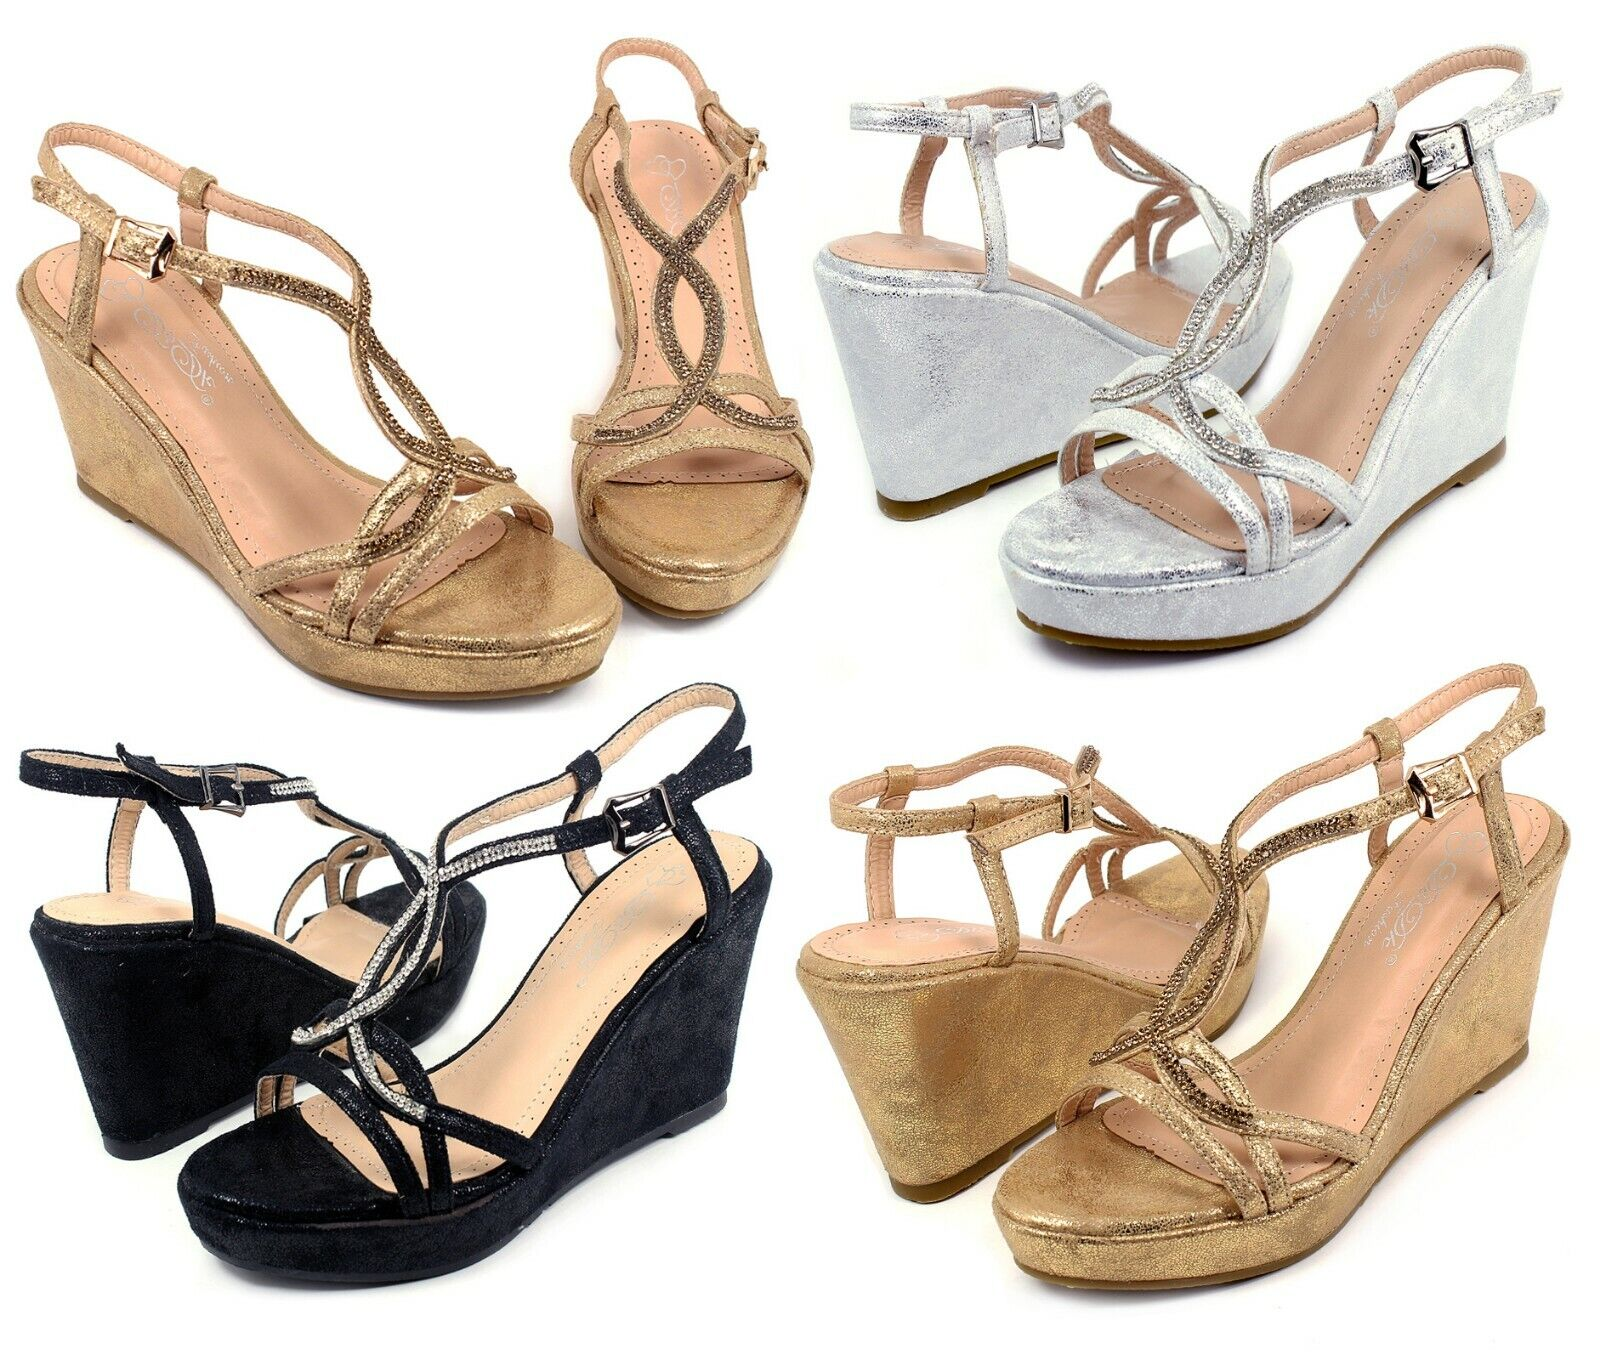 """MARIVE-5 New Blink Wedges Party Prom 3.2"""" inch High Heel 1"""""""